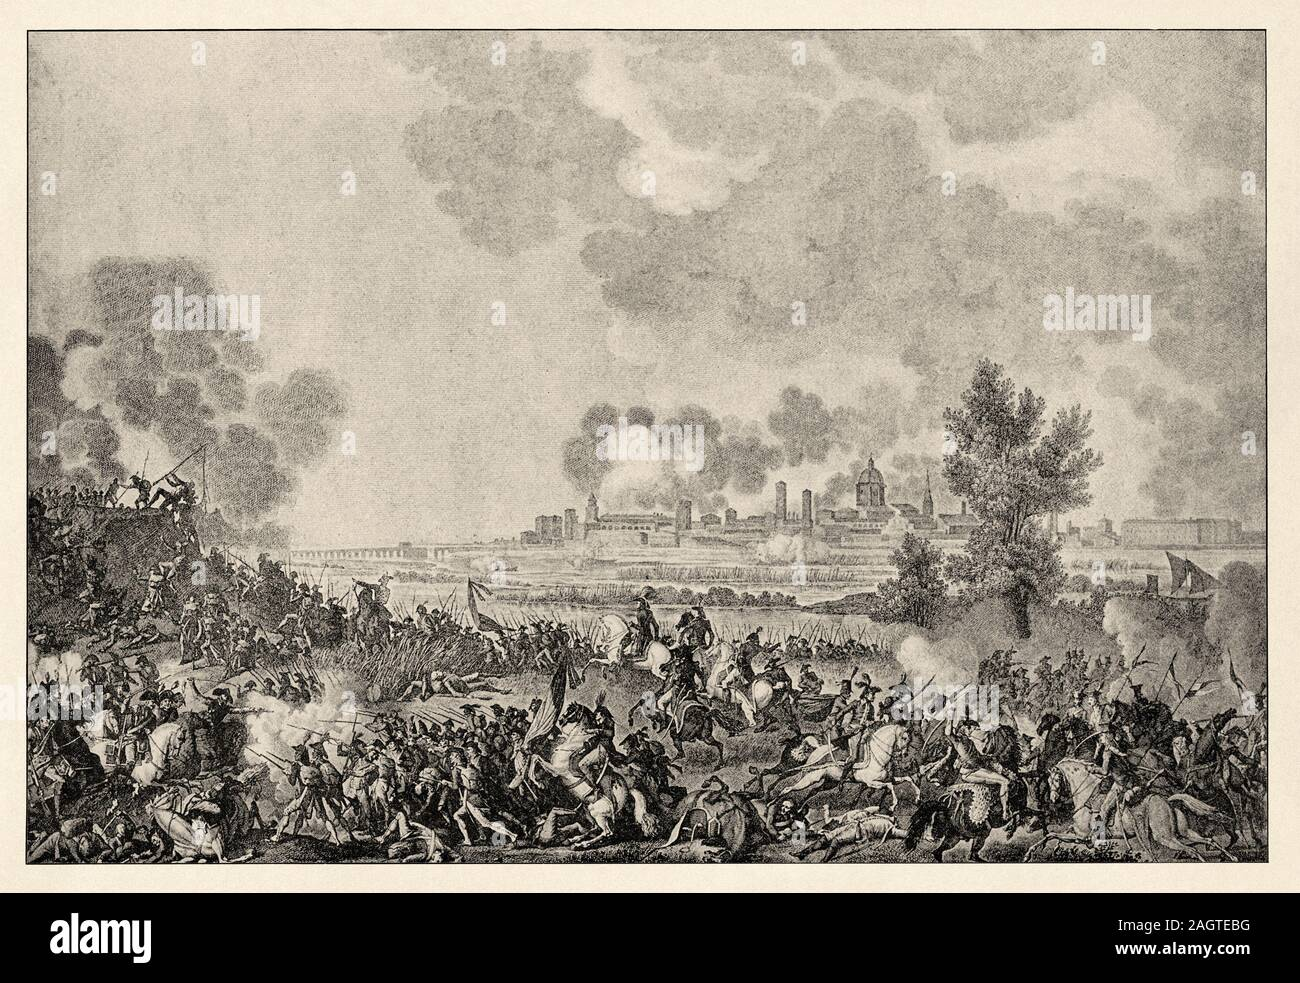 The Battle of Saint-Georges, September 15, 1796. History of France, old engraved illustration image from the book Histoire contemporaine par l'image 1 Stock Photo